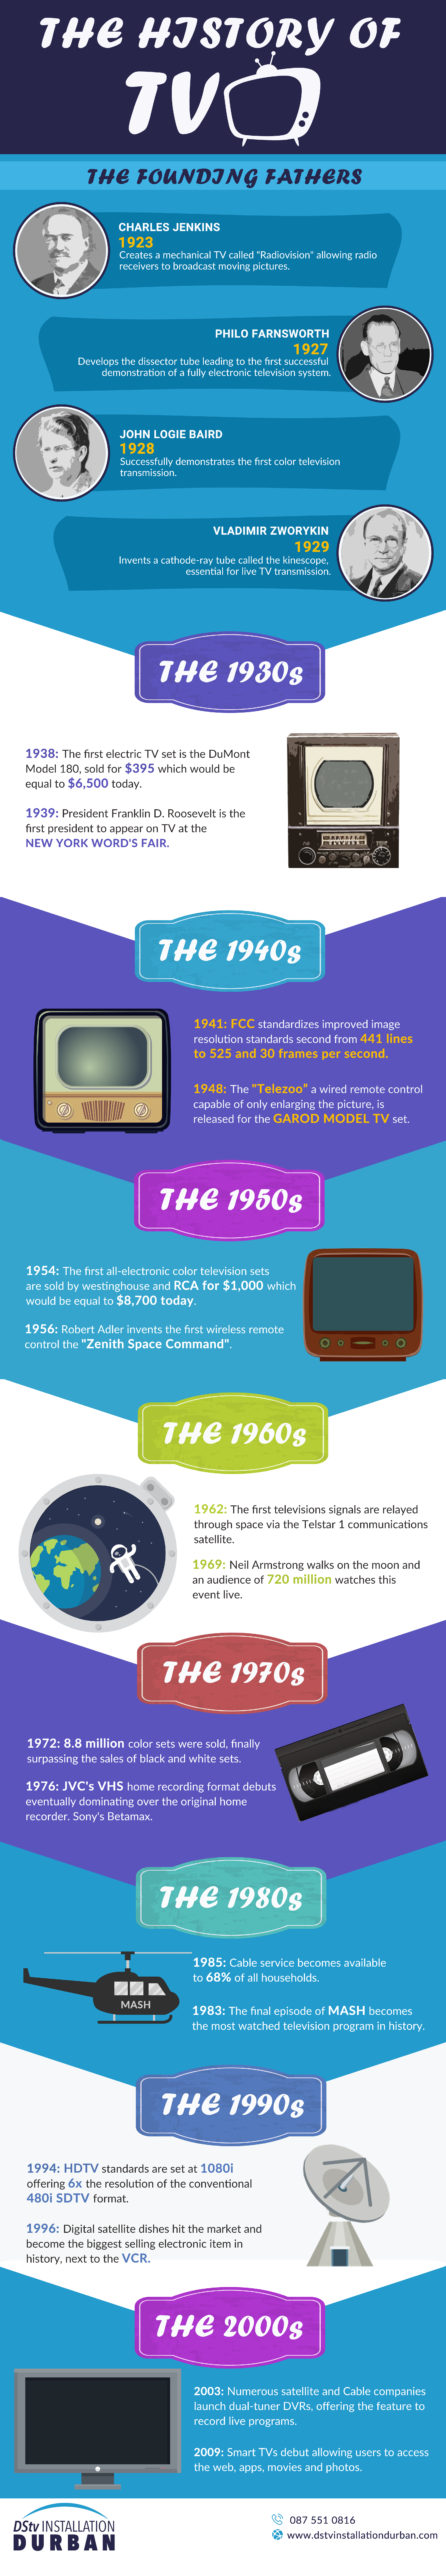 history of TV infographic